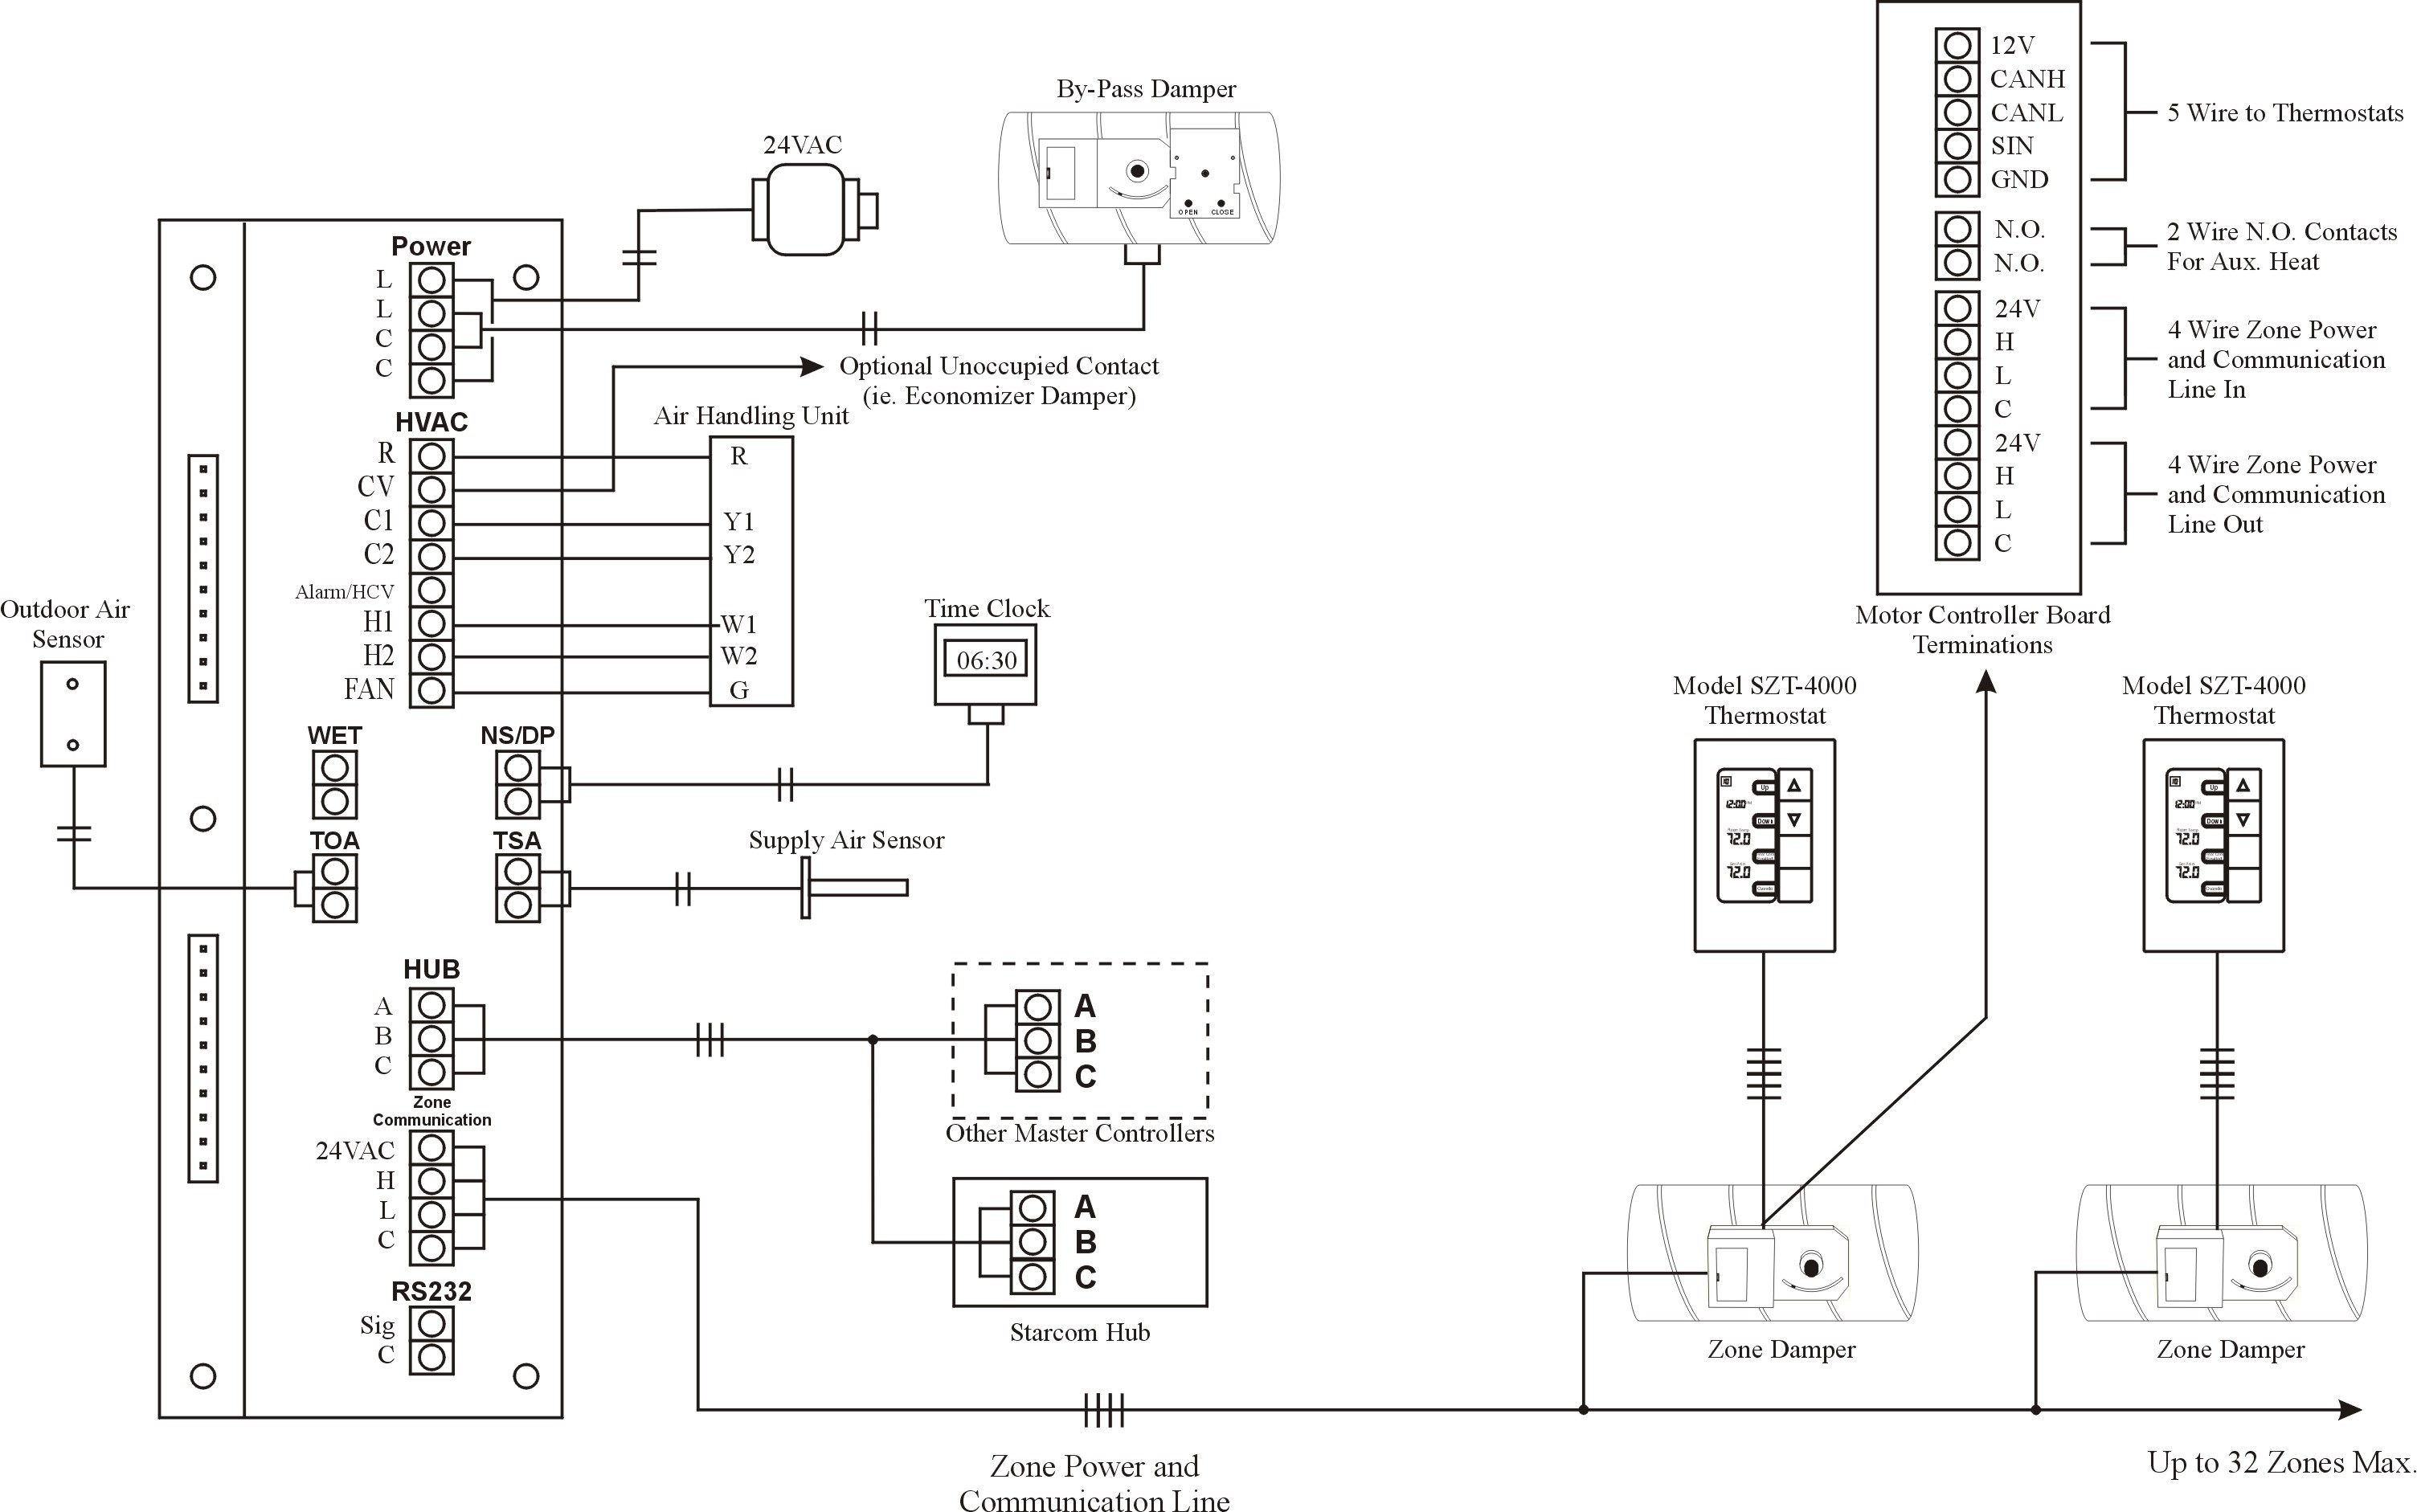 fire alarm flow switch wiring diagram gallery flow switch wiring diagram mass air flow sensor wiring diagram